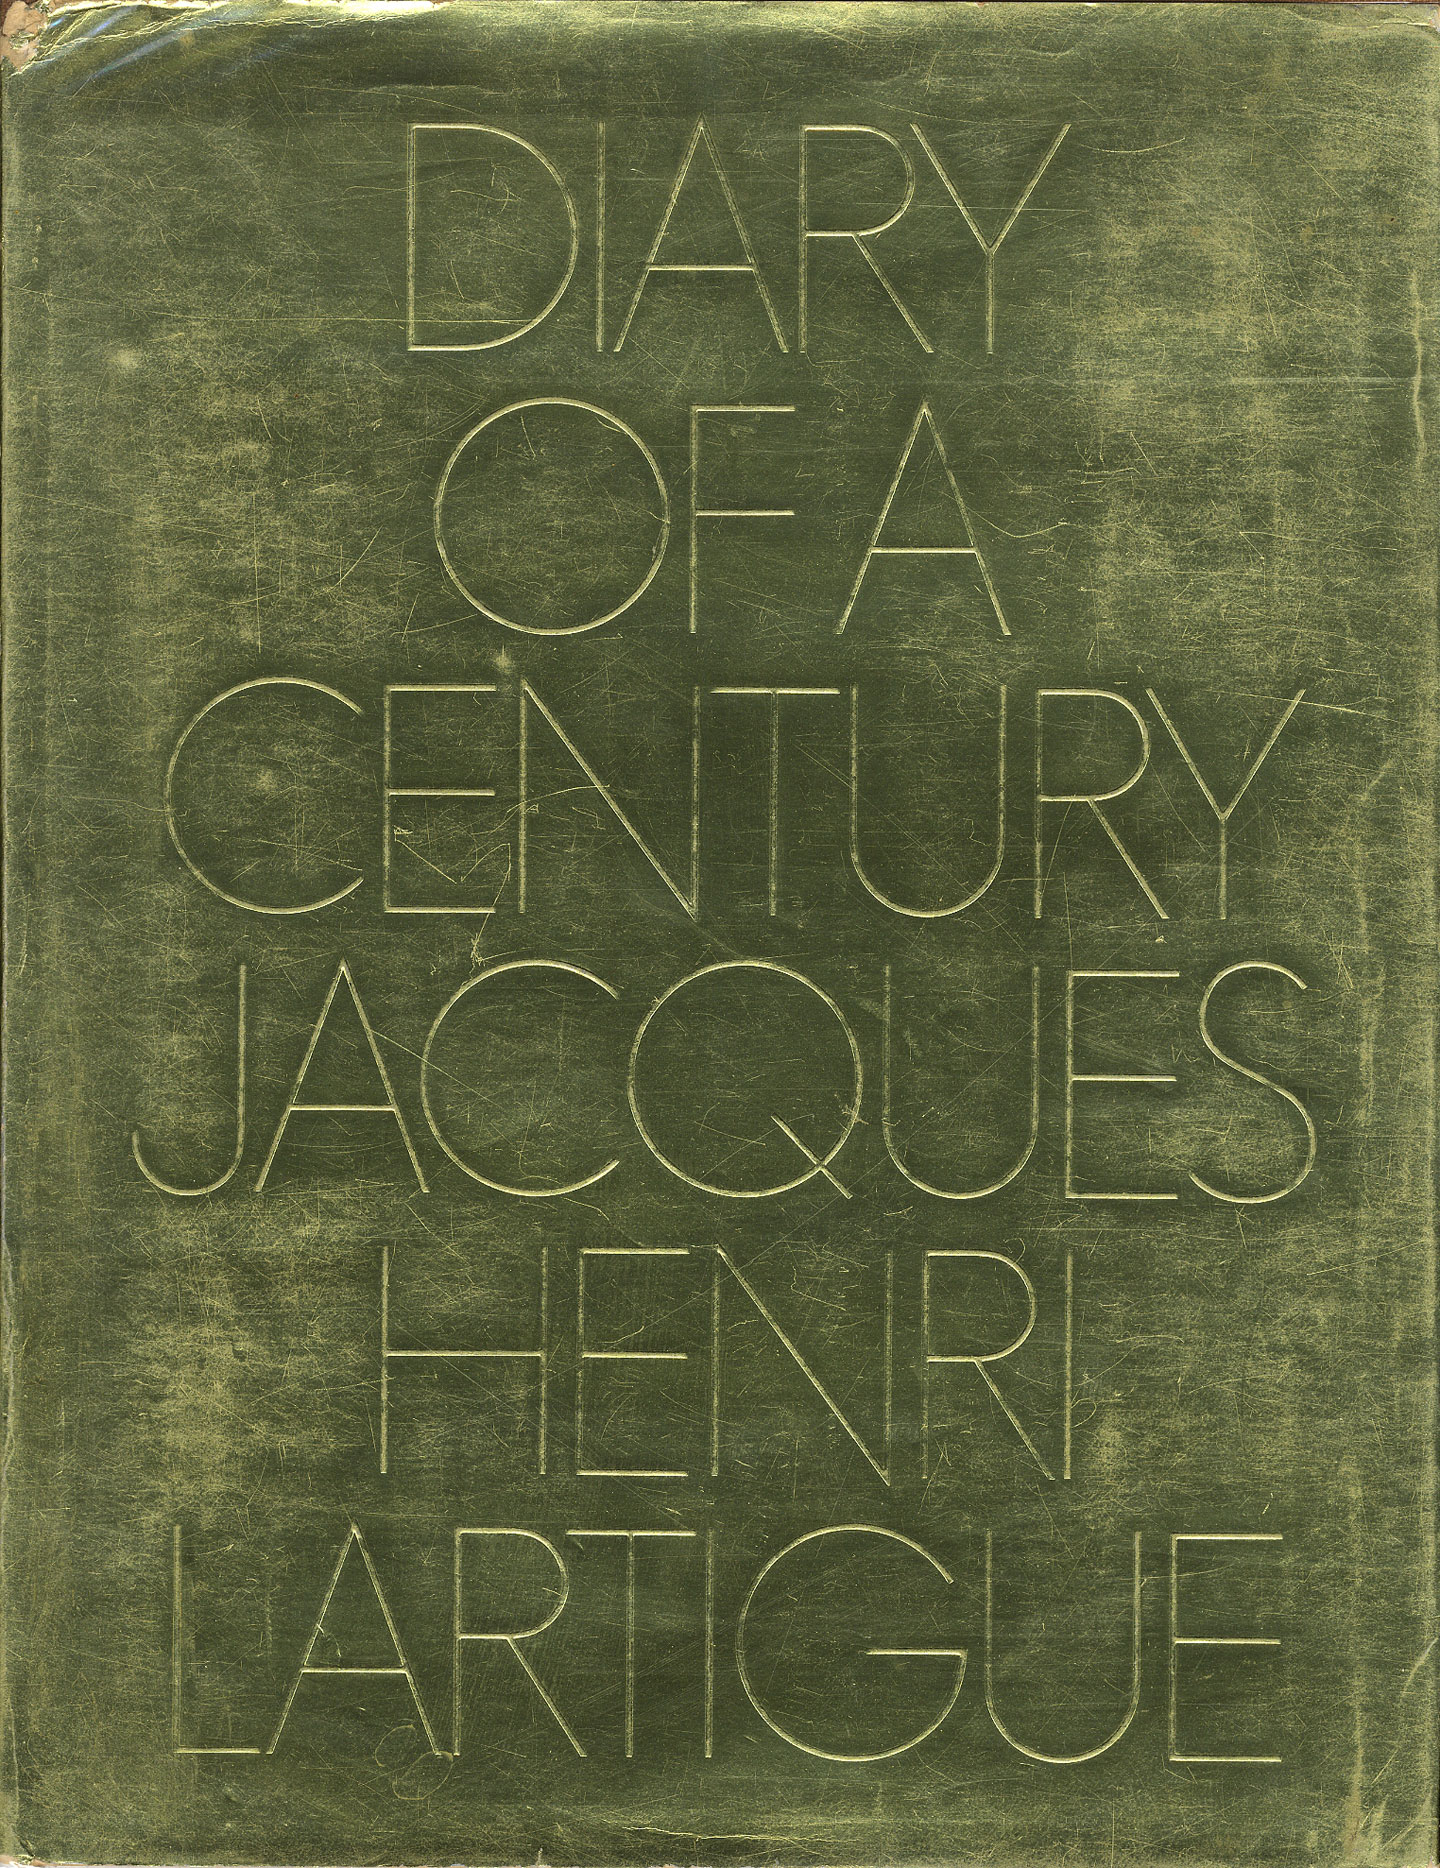 Jacques-Henri Lartigue: Diary of a Century (First Edition)